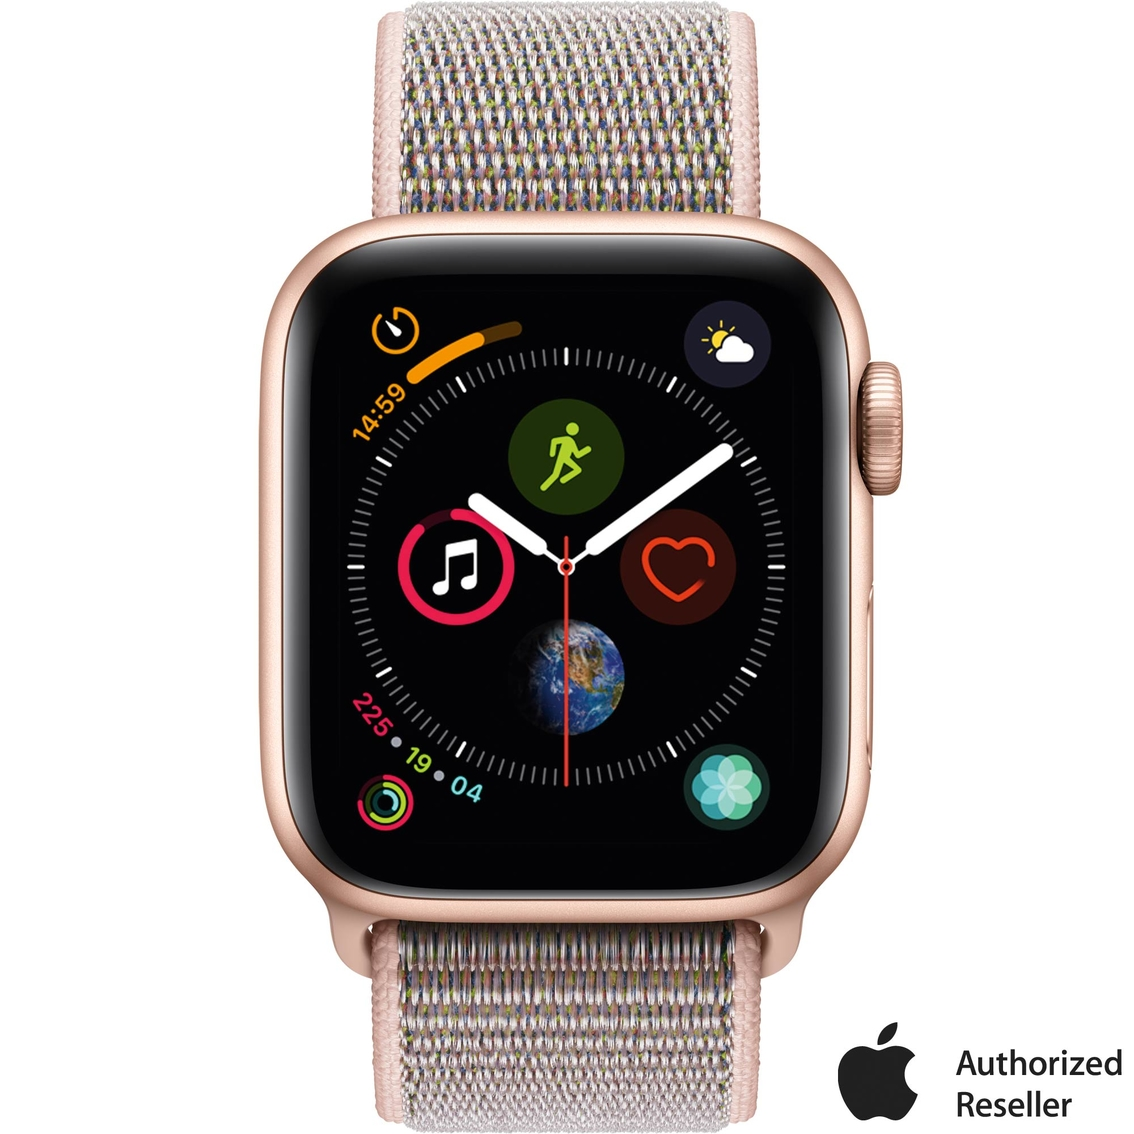 on sale 2d7c1 28844 Apple Watch Series 4 Gps + Cellular Gold Aluminum Case With Pink ...